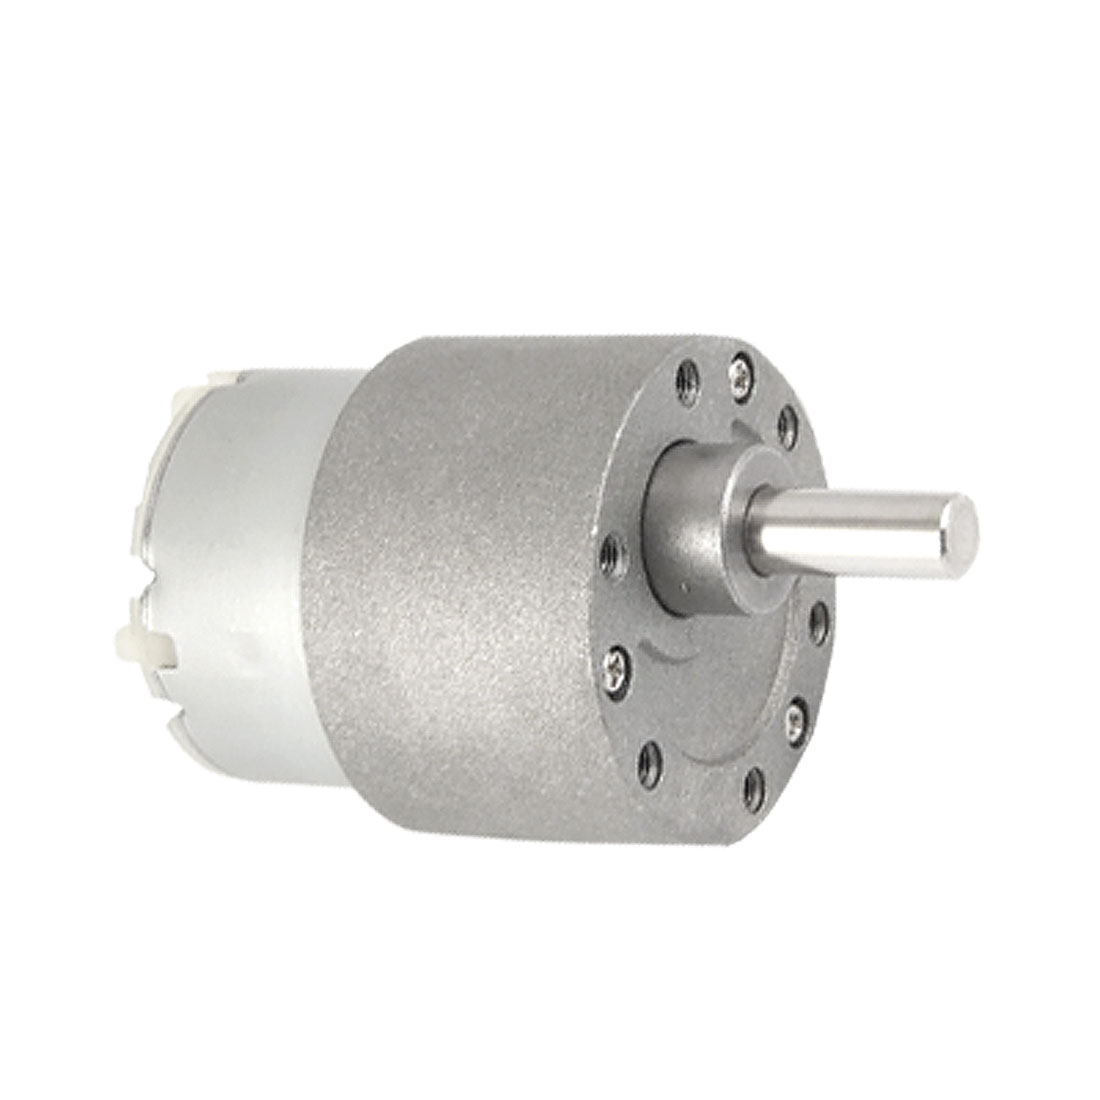 12V-DC-0-4A-60RPM-Electric-Torque-Speed-Reduce-Gear-Box-Motor-37mm